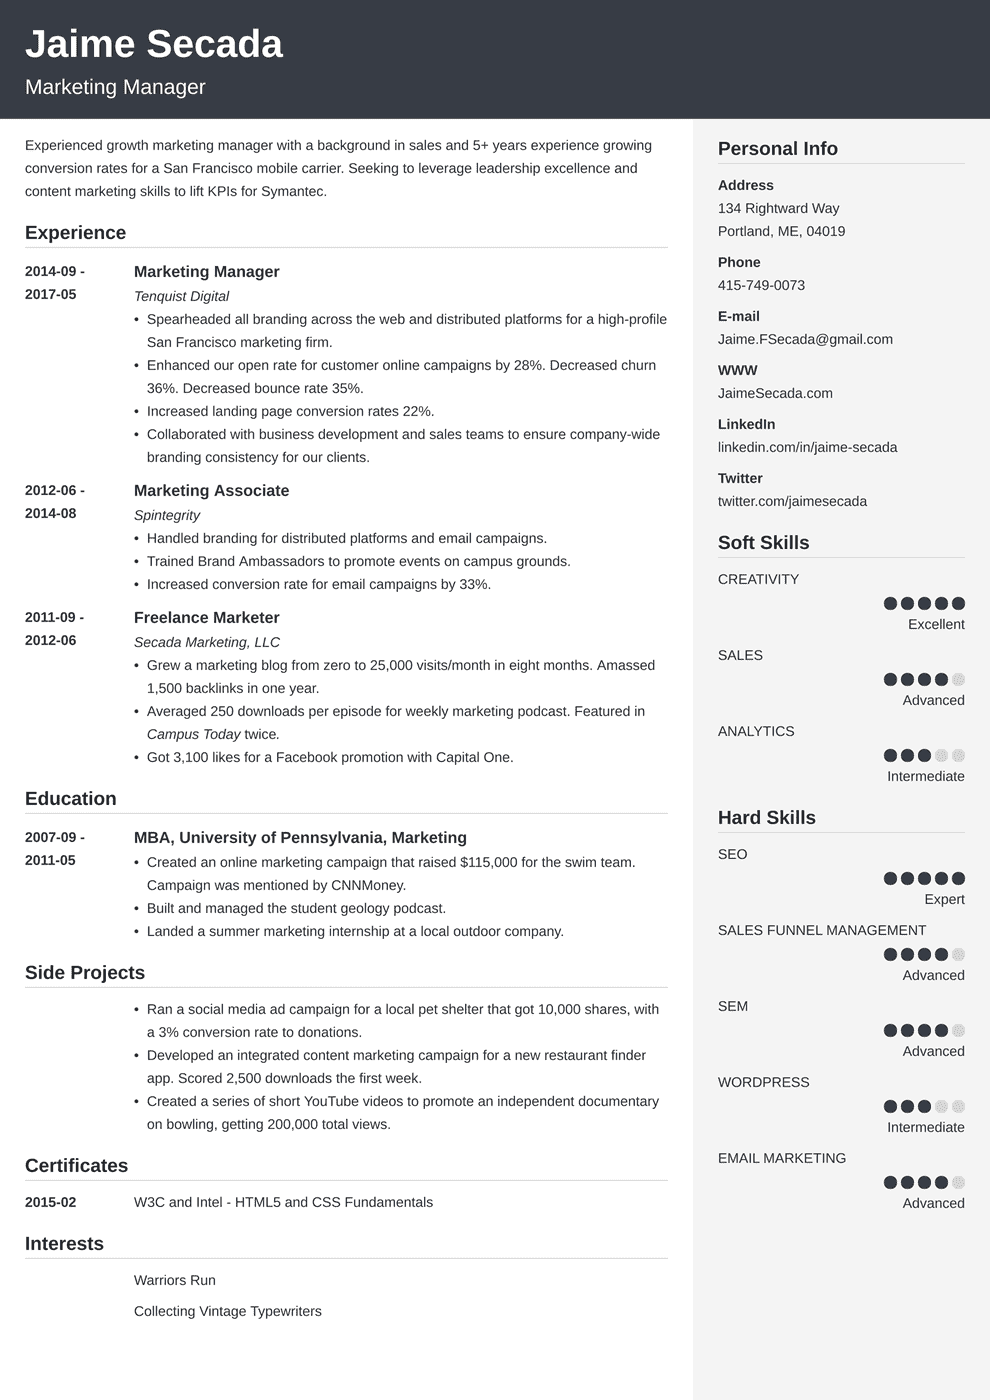 marketing resume template cubic in 2020 Marketing resume